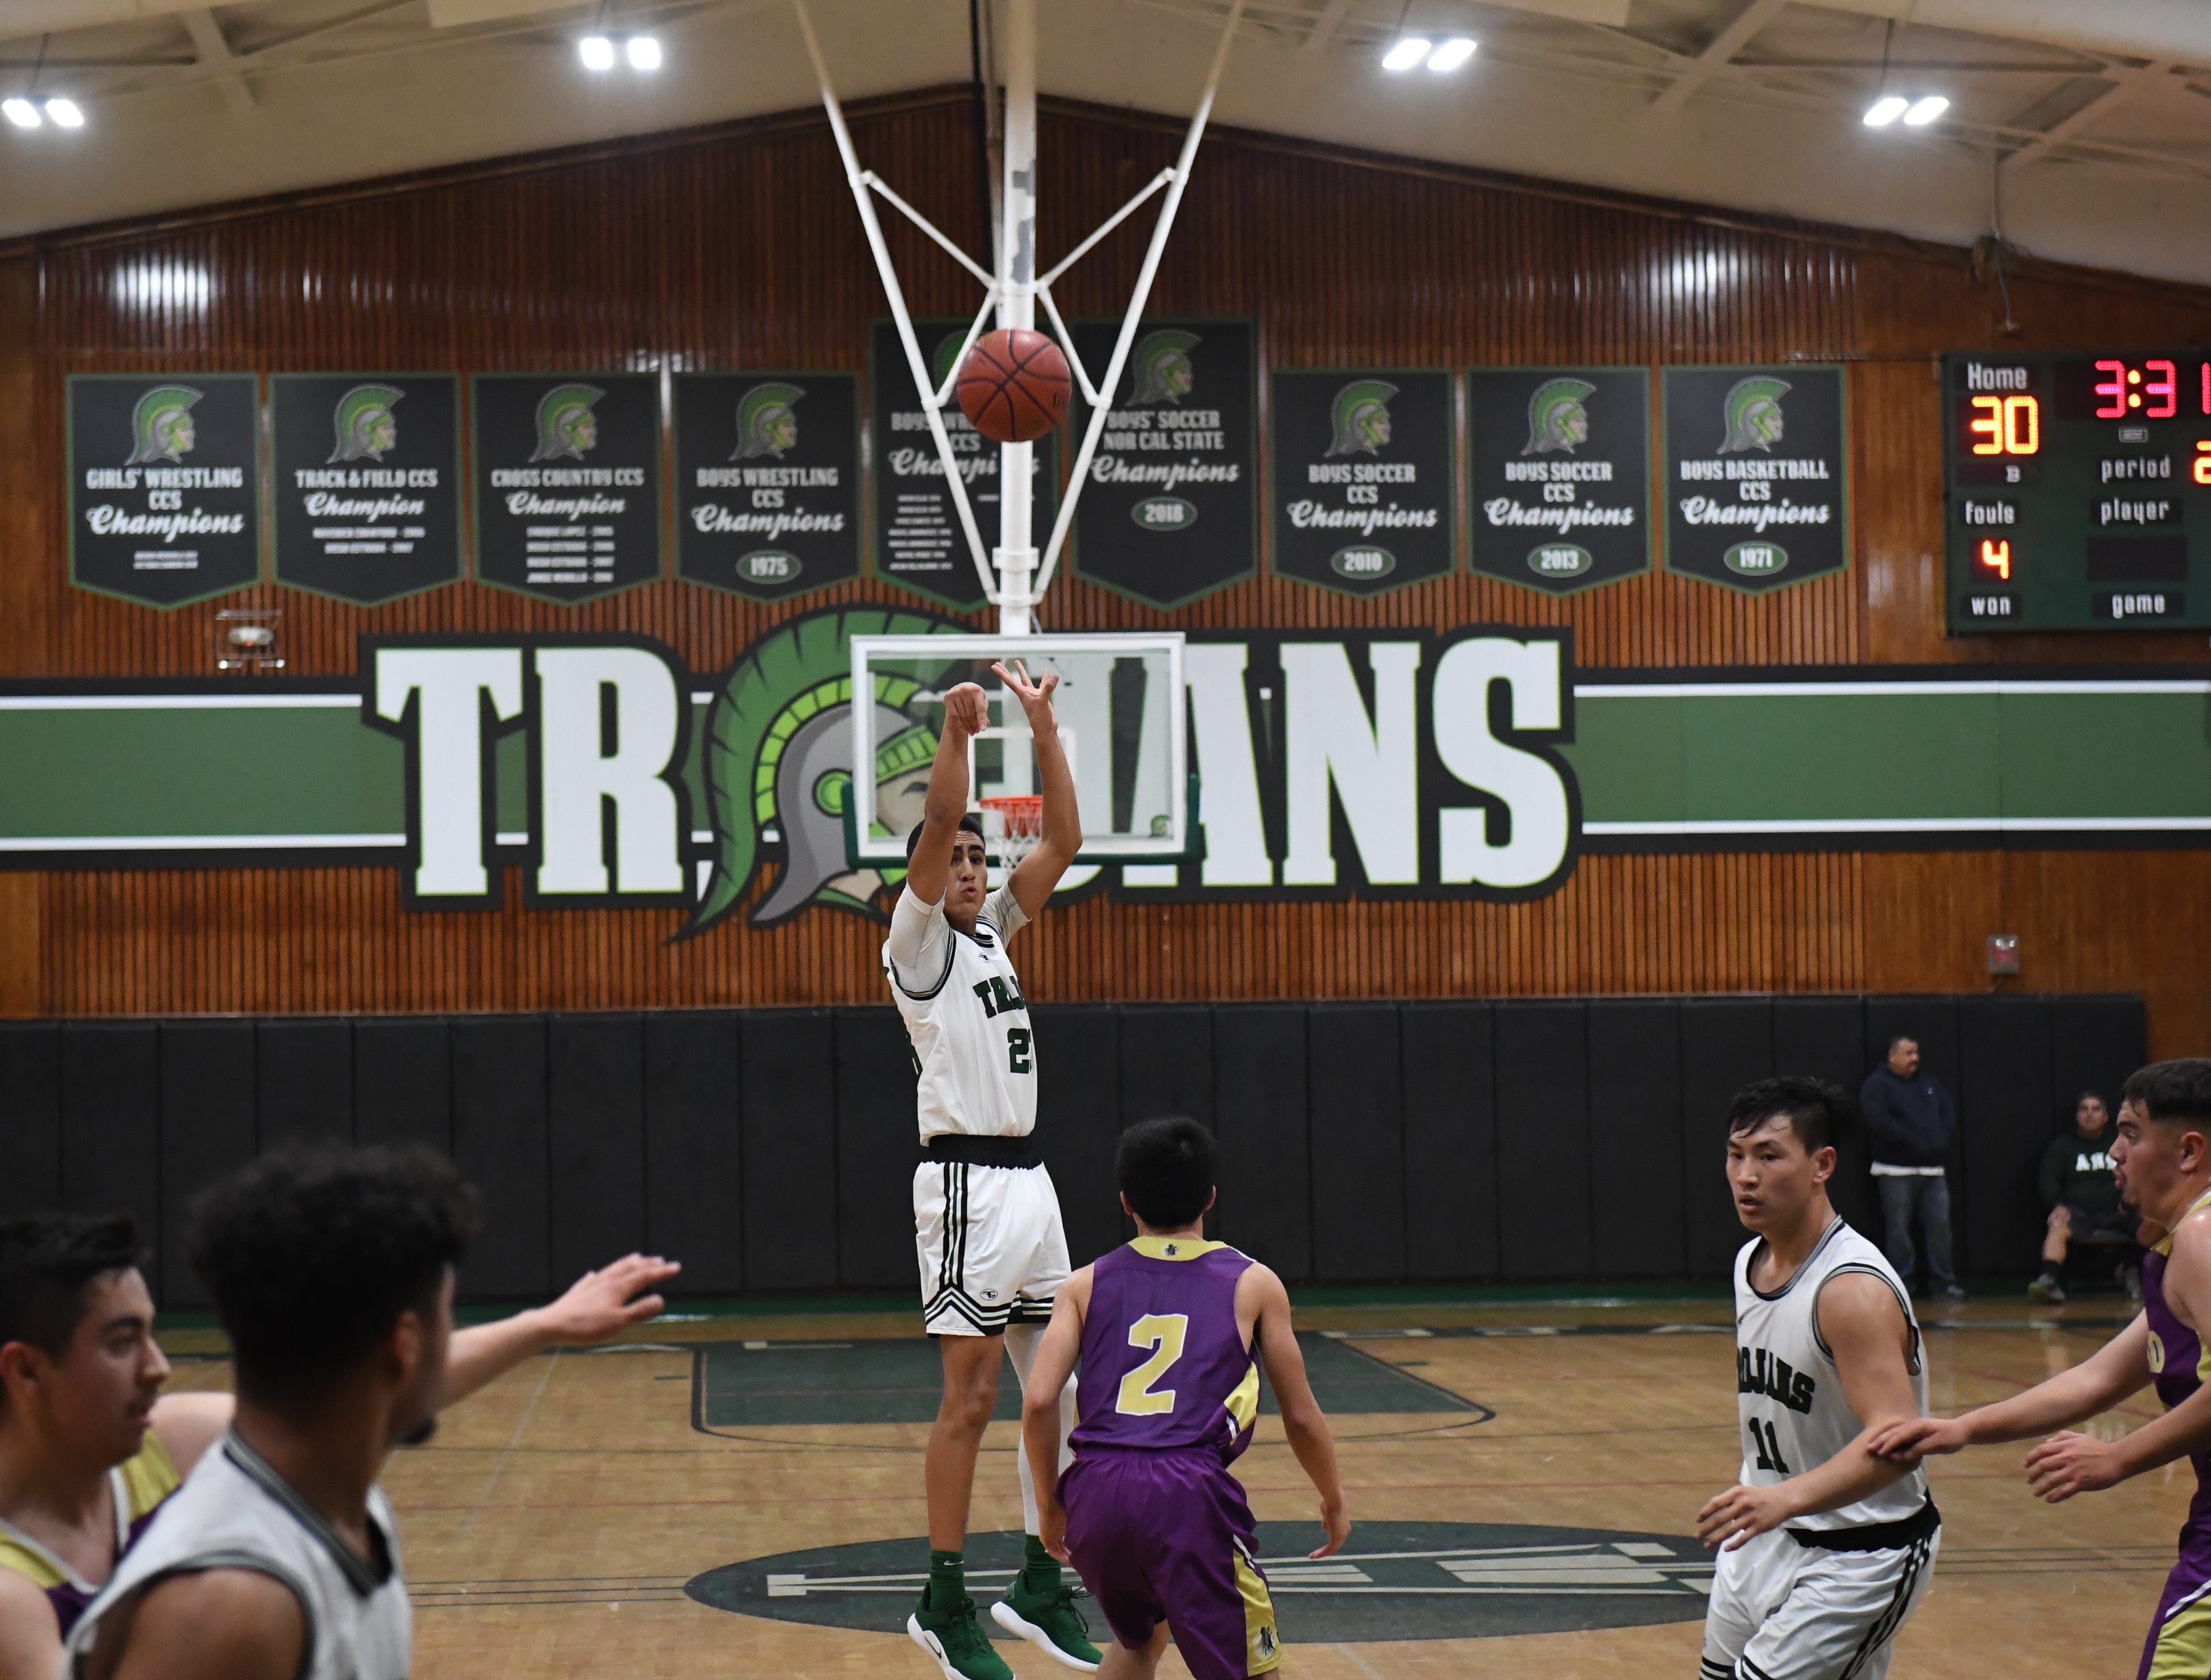 Alisal guard Josue Gil-Silva (23) shoots a 3-point shot in the second quarter.